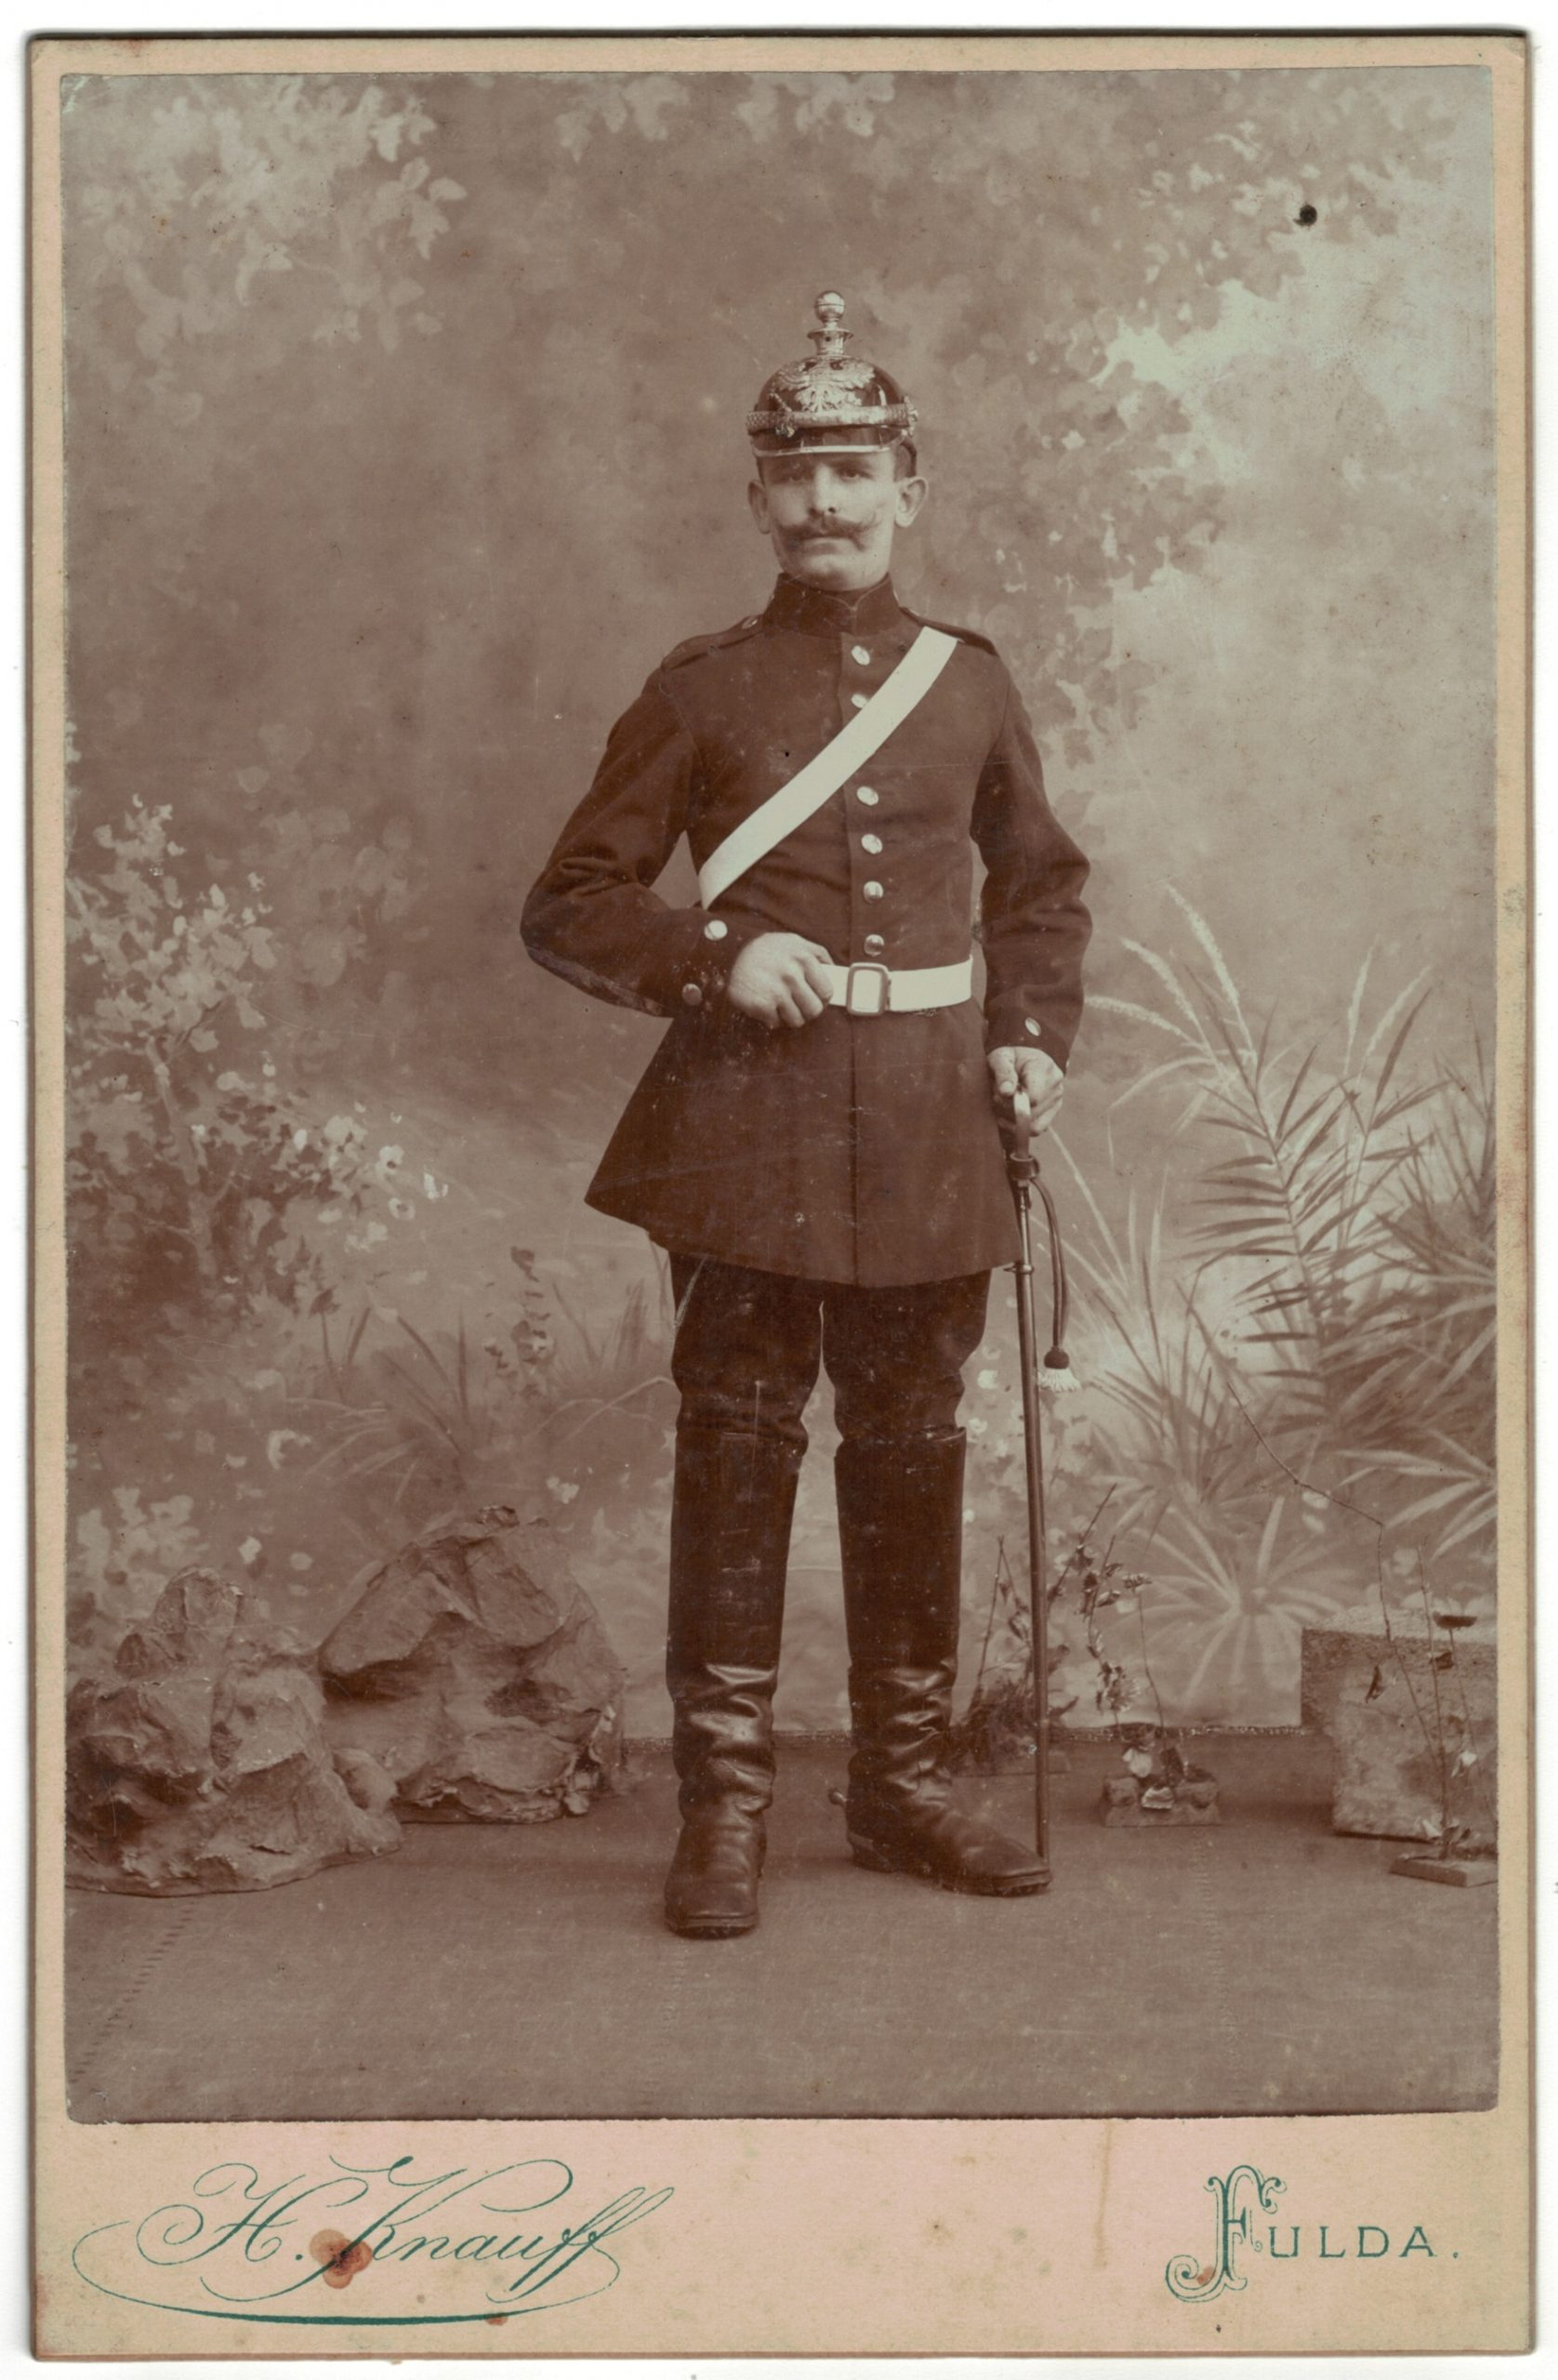 Carte CDV photo - Grand format - Soldat Allemand Fula fin XIX début XX. Artillerie Uniforme - Casque